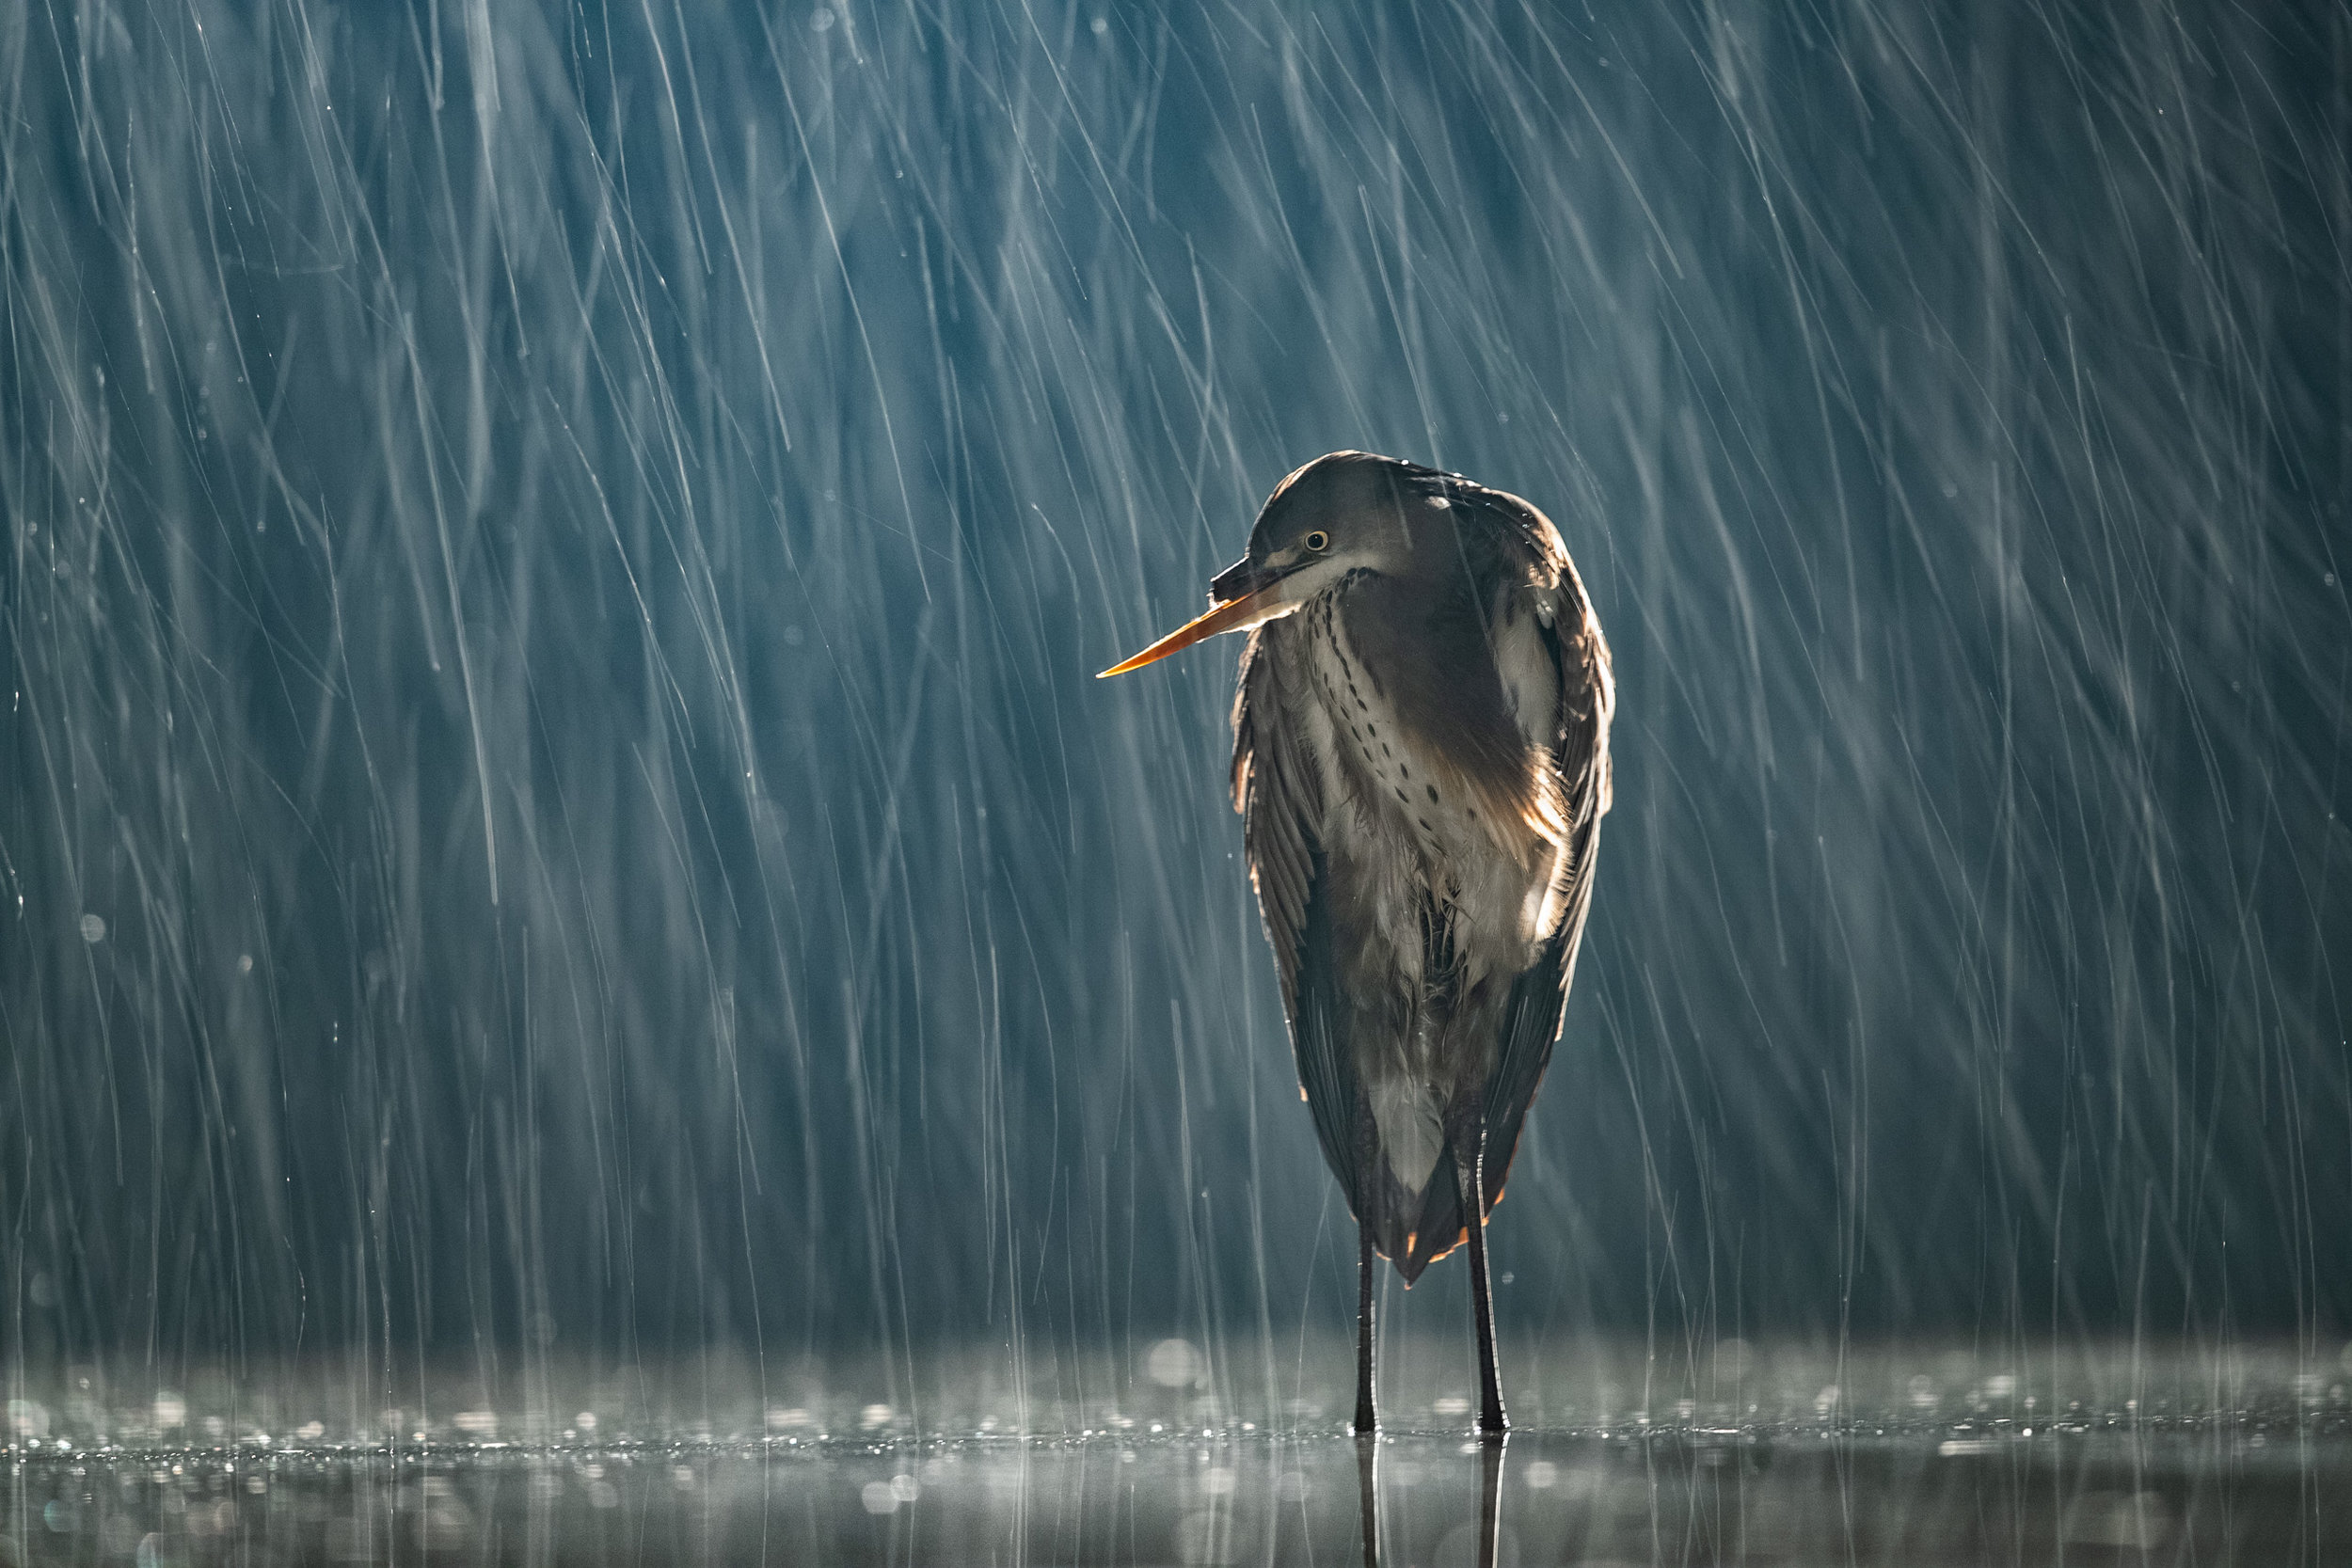 Grey Heron during a night rain storm this January, Kiskunsag National Park, Hungary. Using a very slow shutter speed of 1/3 seconds accentuates the rain turning the drops into arcing lines. A backlight illuminates the rain behind the bird nicely.